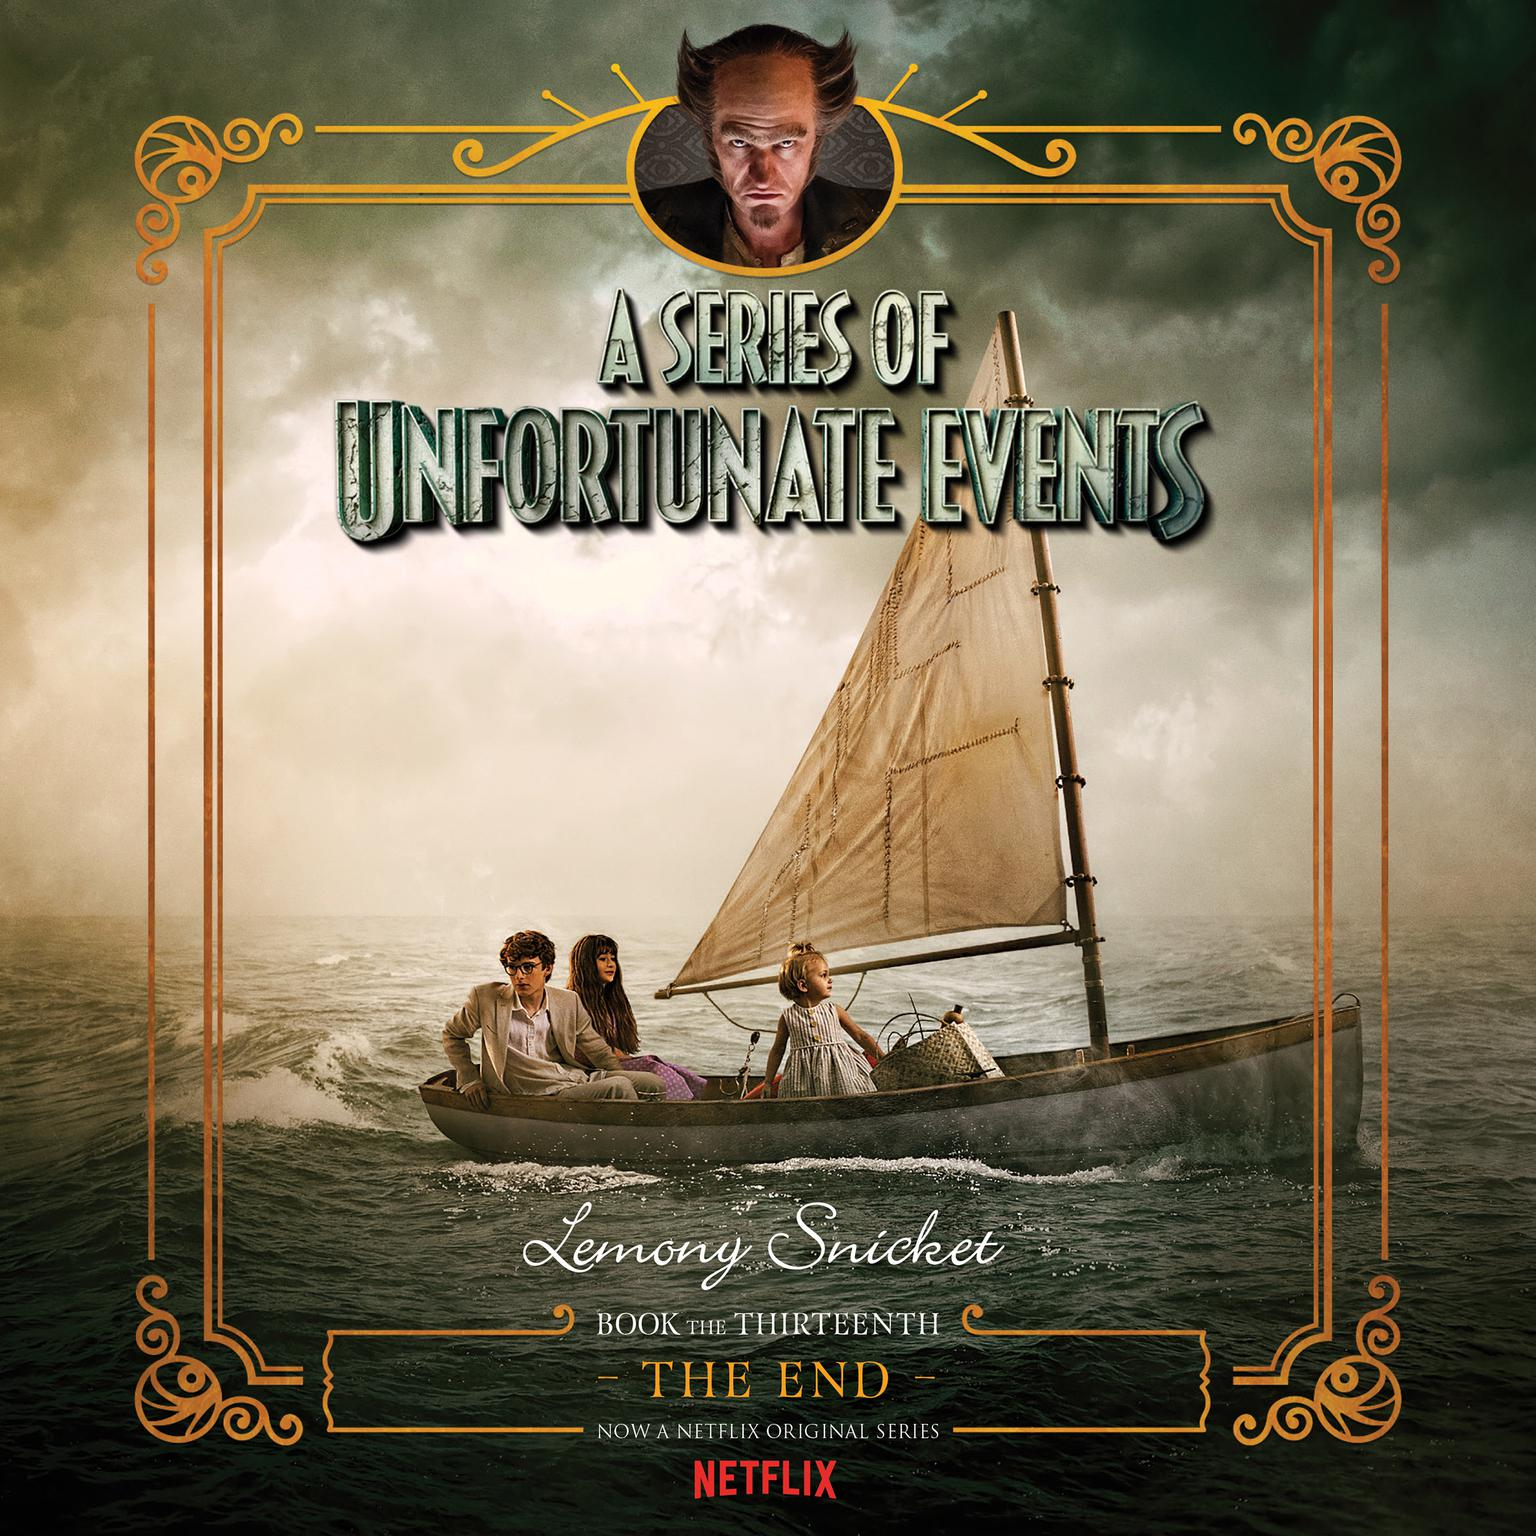 Printable A Series of Unfortunate Events #13: The End Audiobook Cover Art